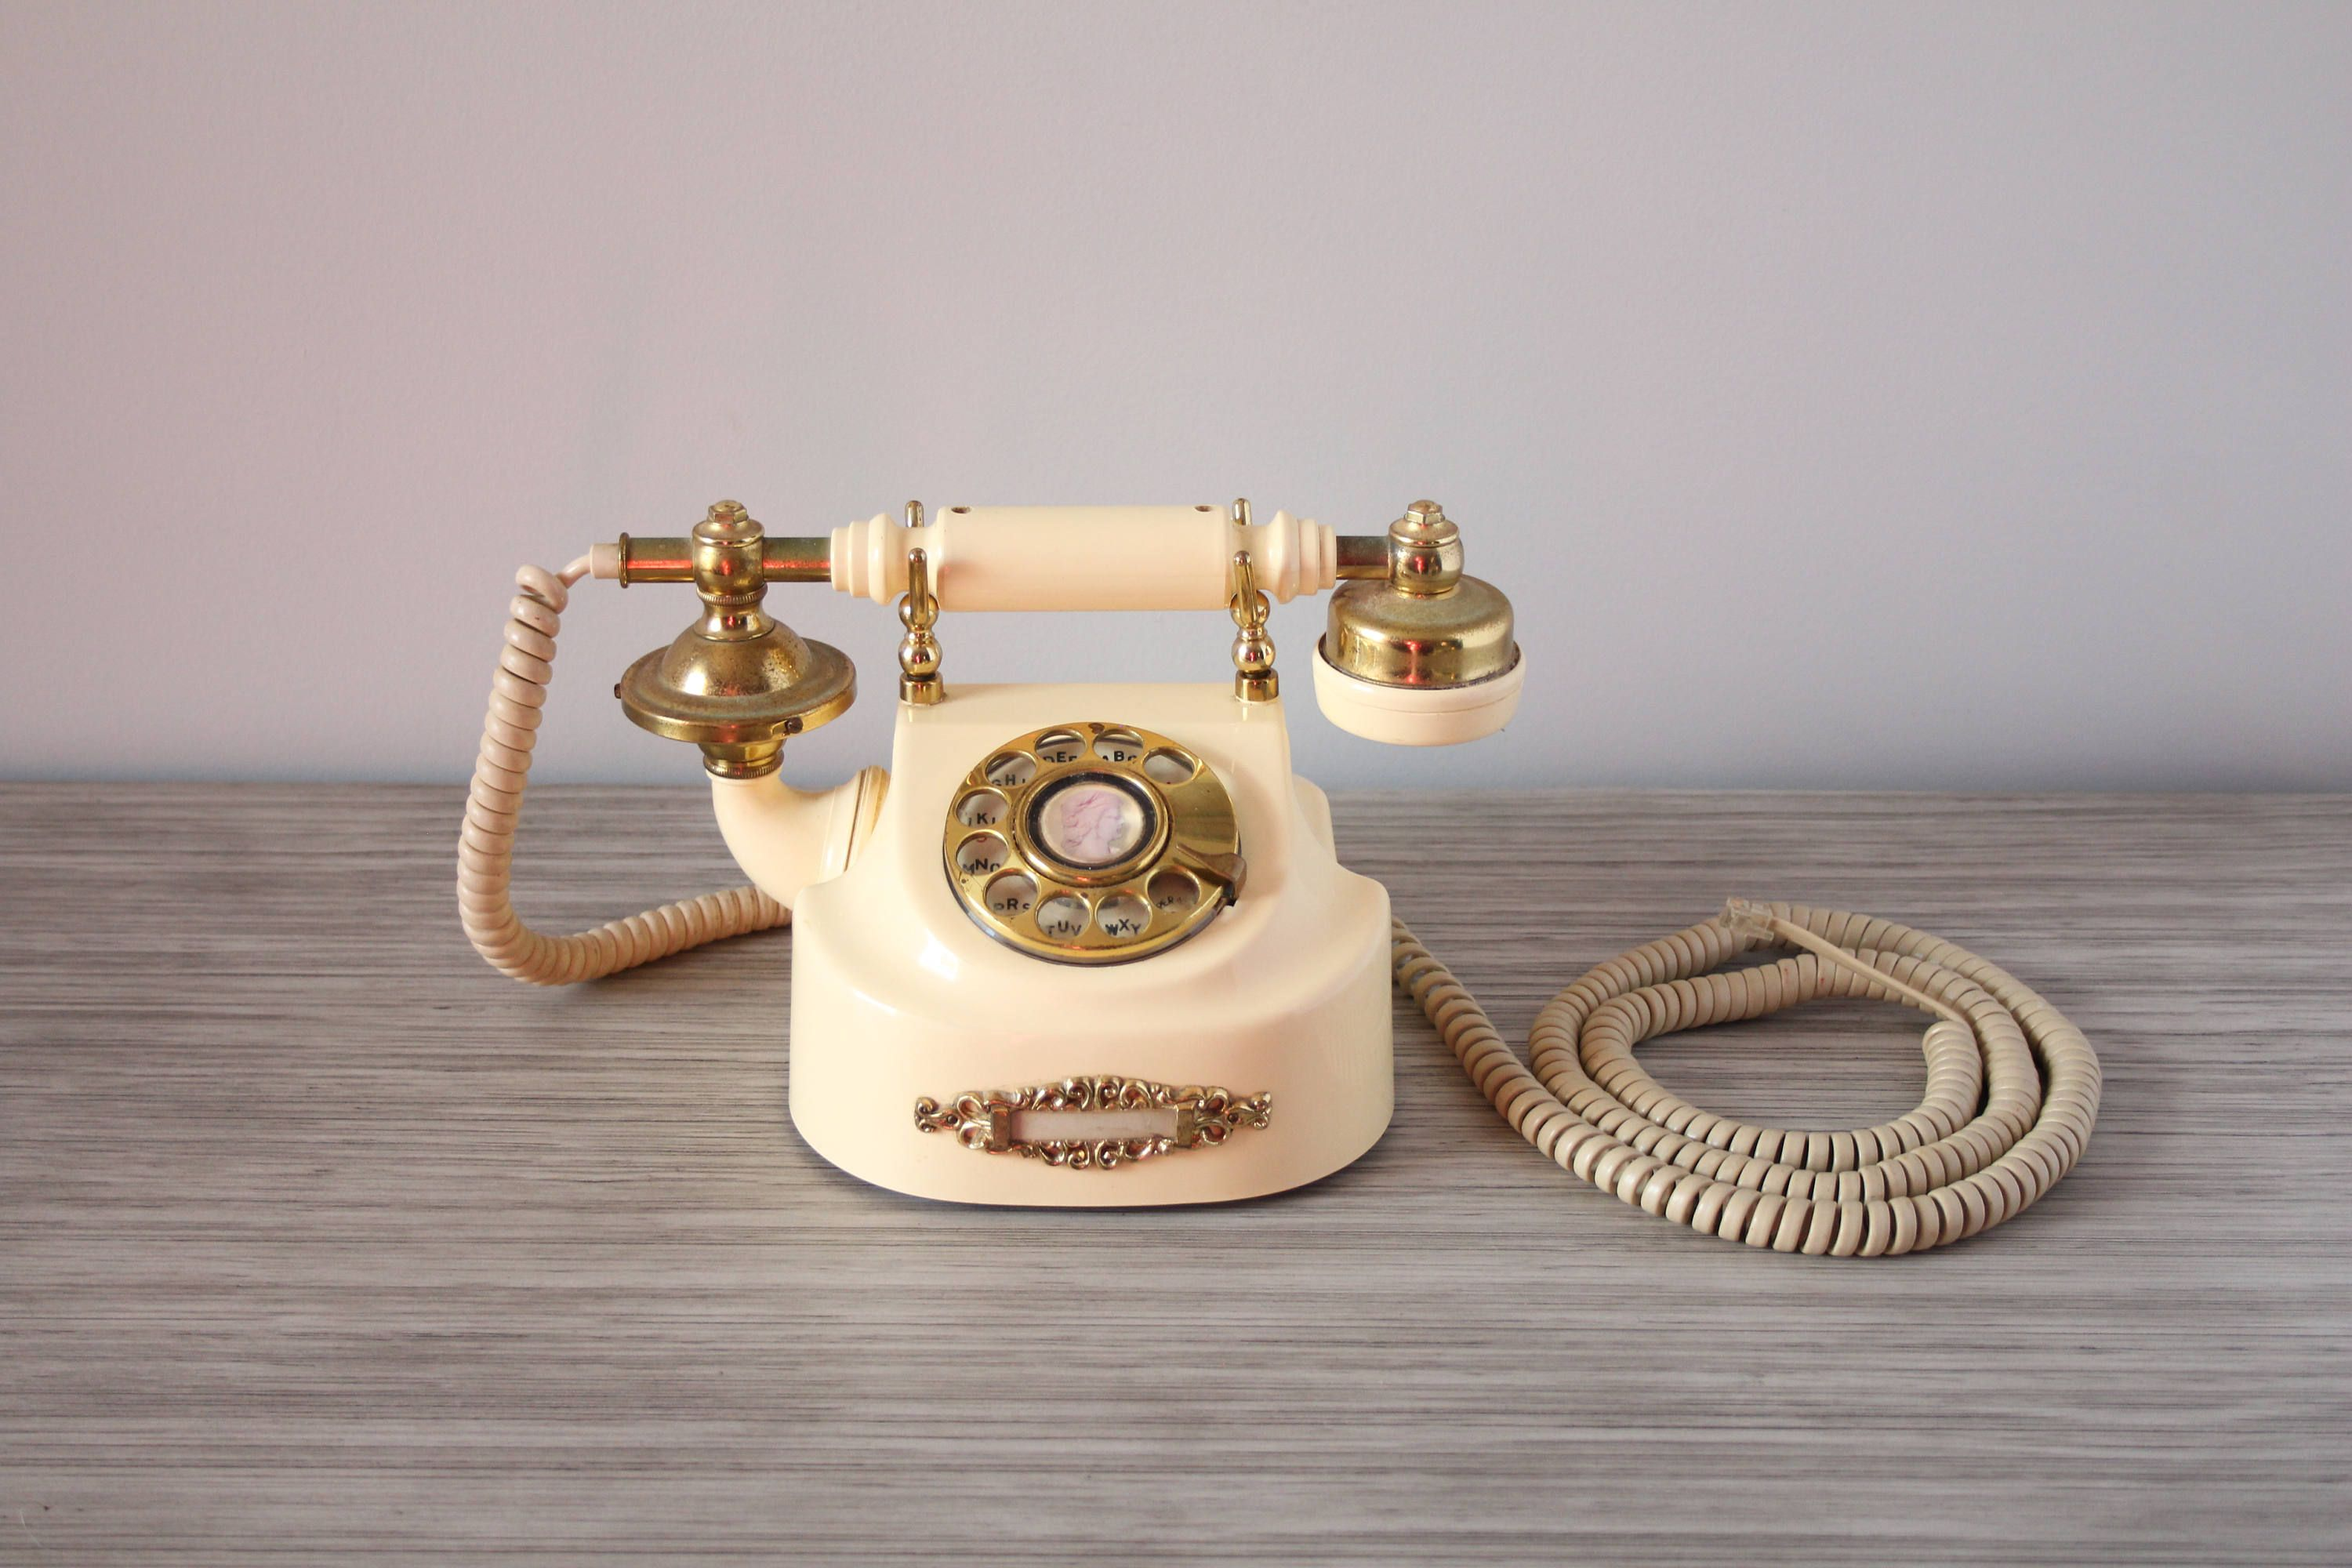 vintage french style working rotary phone solid brass hardware ivory plastic body new york telephone company photography store display prop by  [ 3000 x 2000 Pixel ]